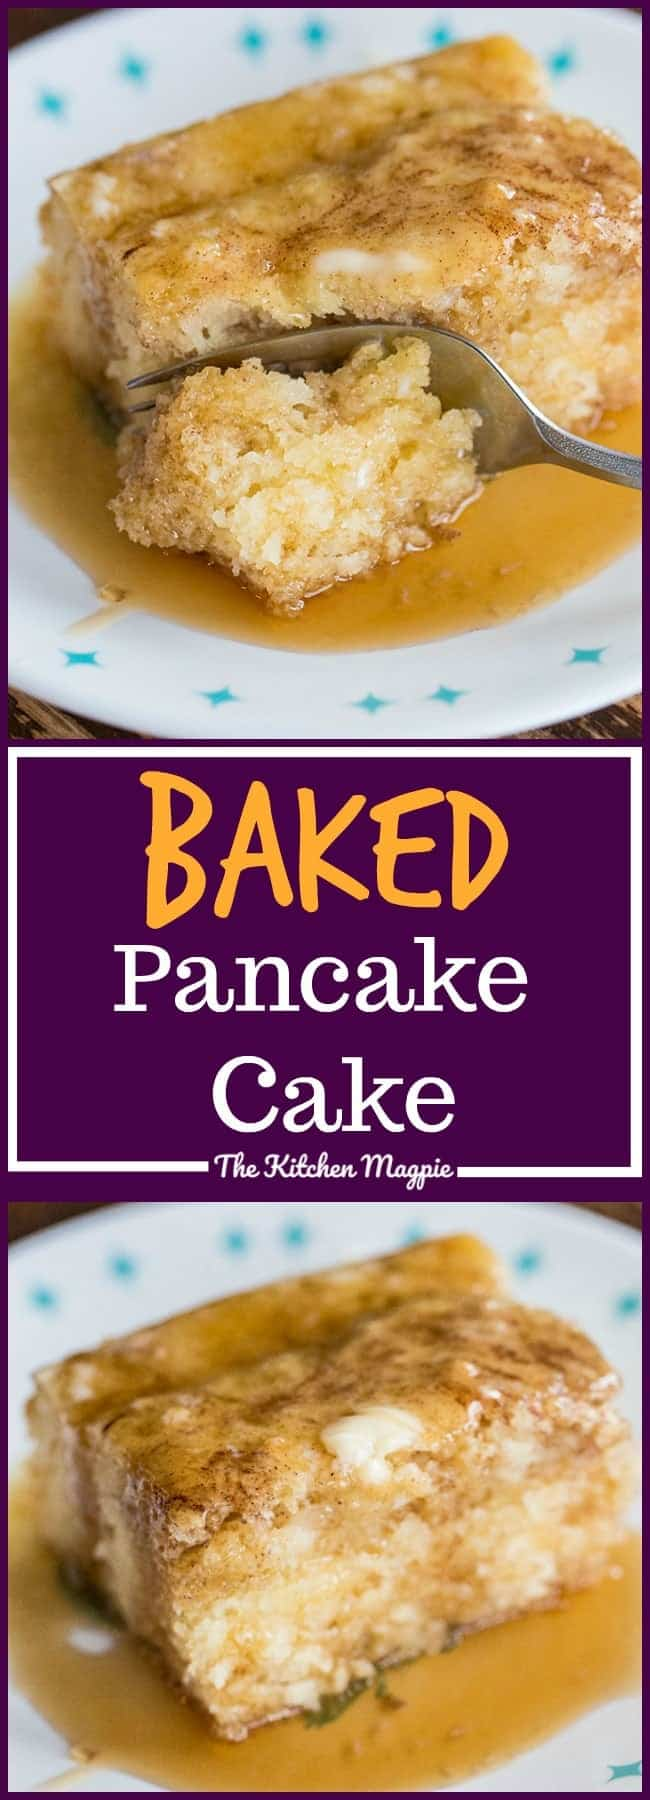 If you're looking to spruce up your breakfast game, this Baked Cinnamon Pancake Cake is sure to do the trick! Bake it in a pan and call it breakfast! Recipe from @kitchenmagpie #breakfast #pancakes #recipe #family #kids #syrup #brunch